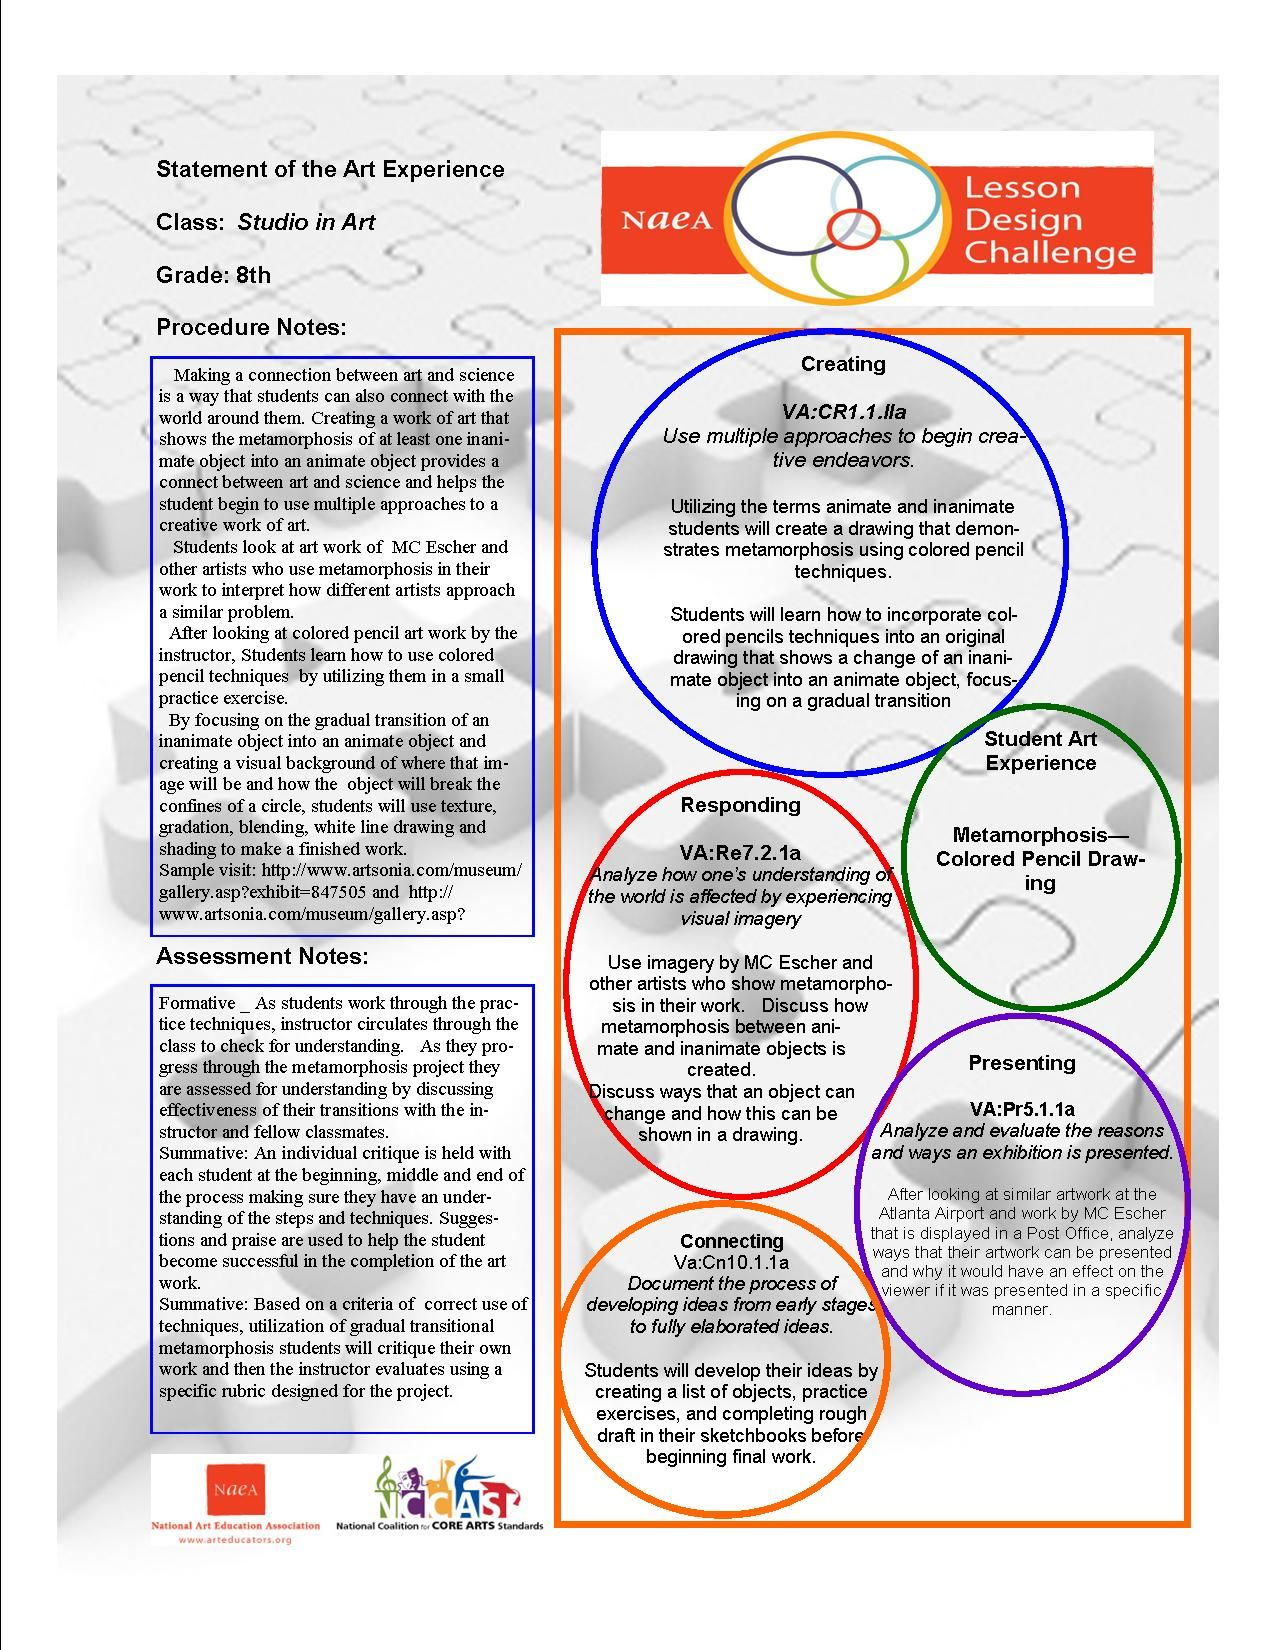 Pin By Betsy Logan On Naea Lesson Design Challenge